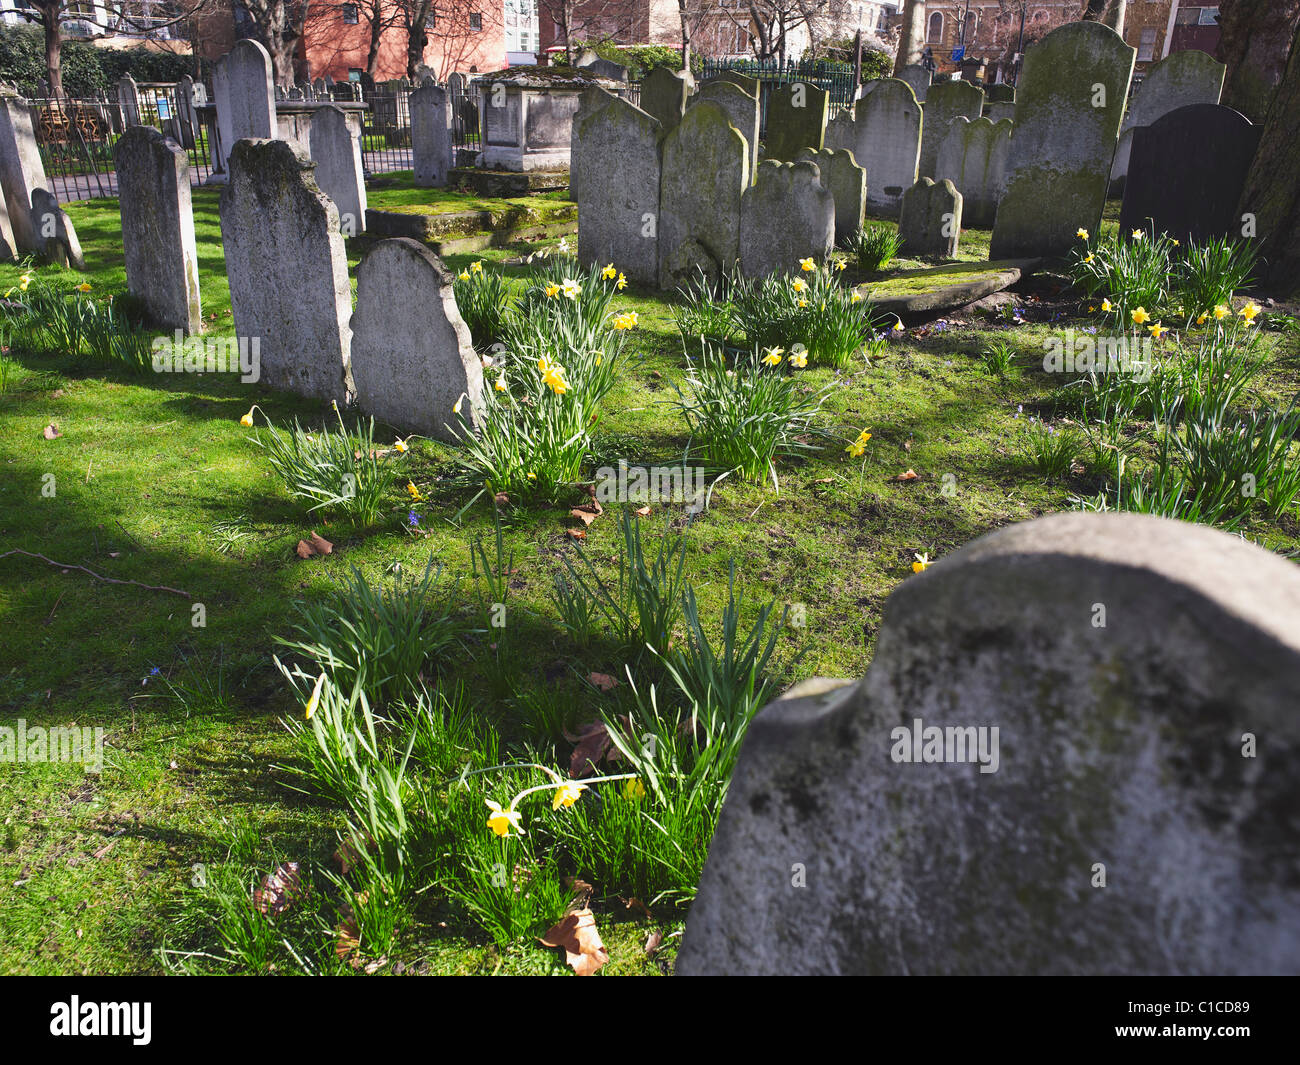 Bunhill Fields, in the City of London, since 1660s has been a burial ground for dissenters and non-conformists - Stock Image